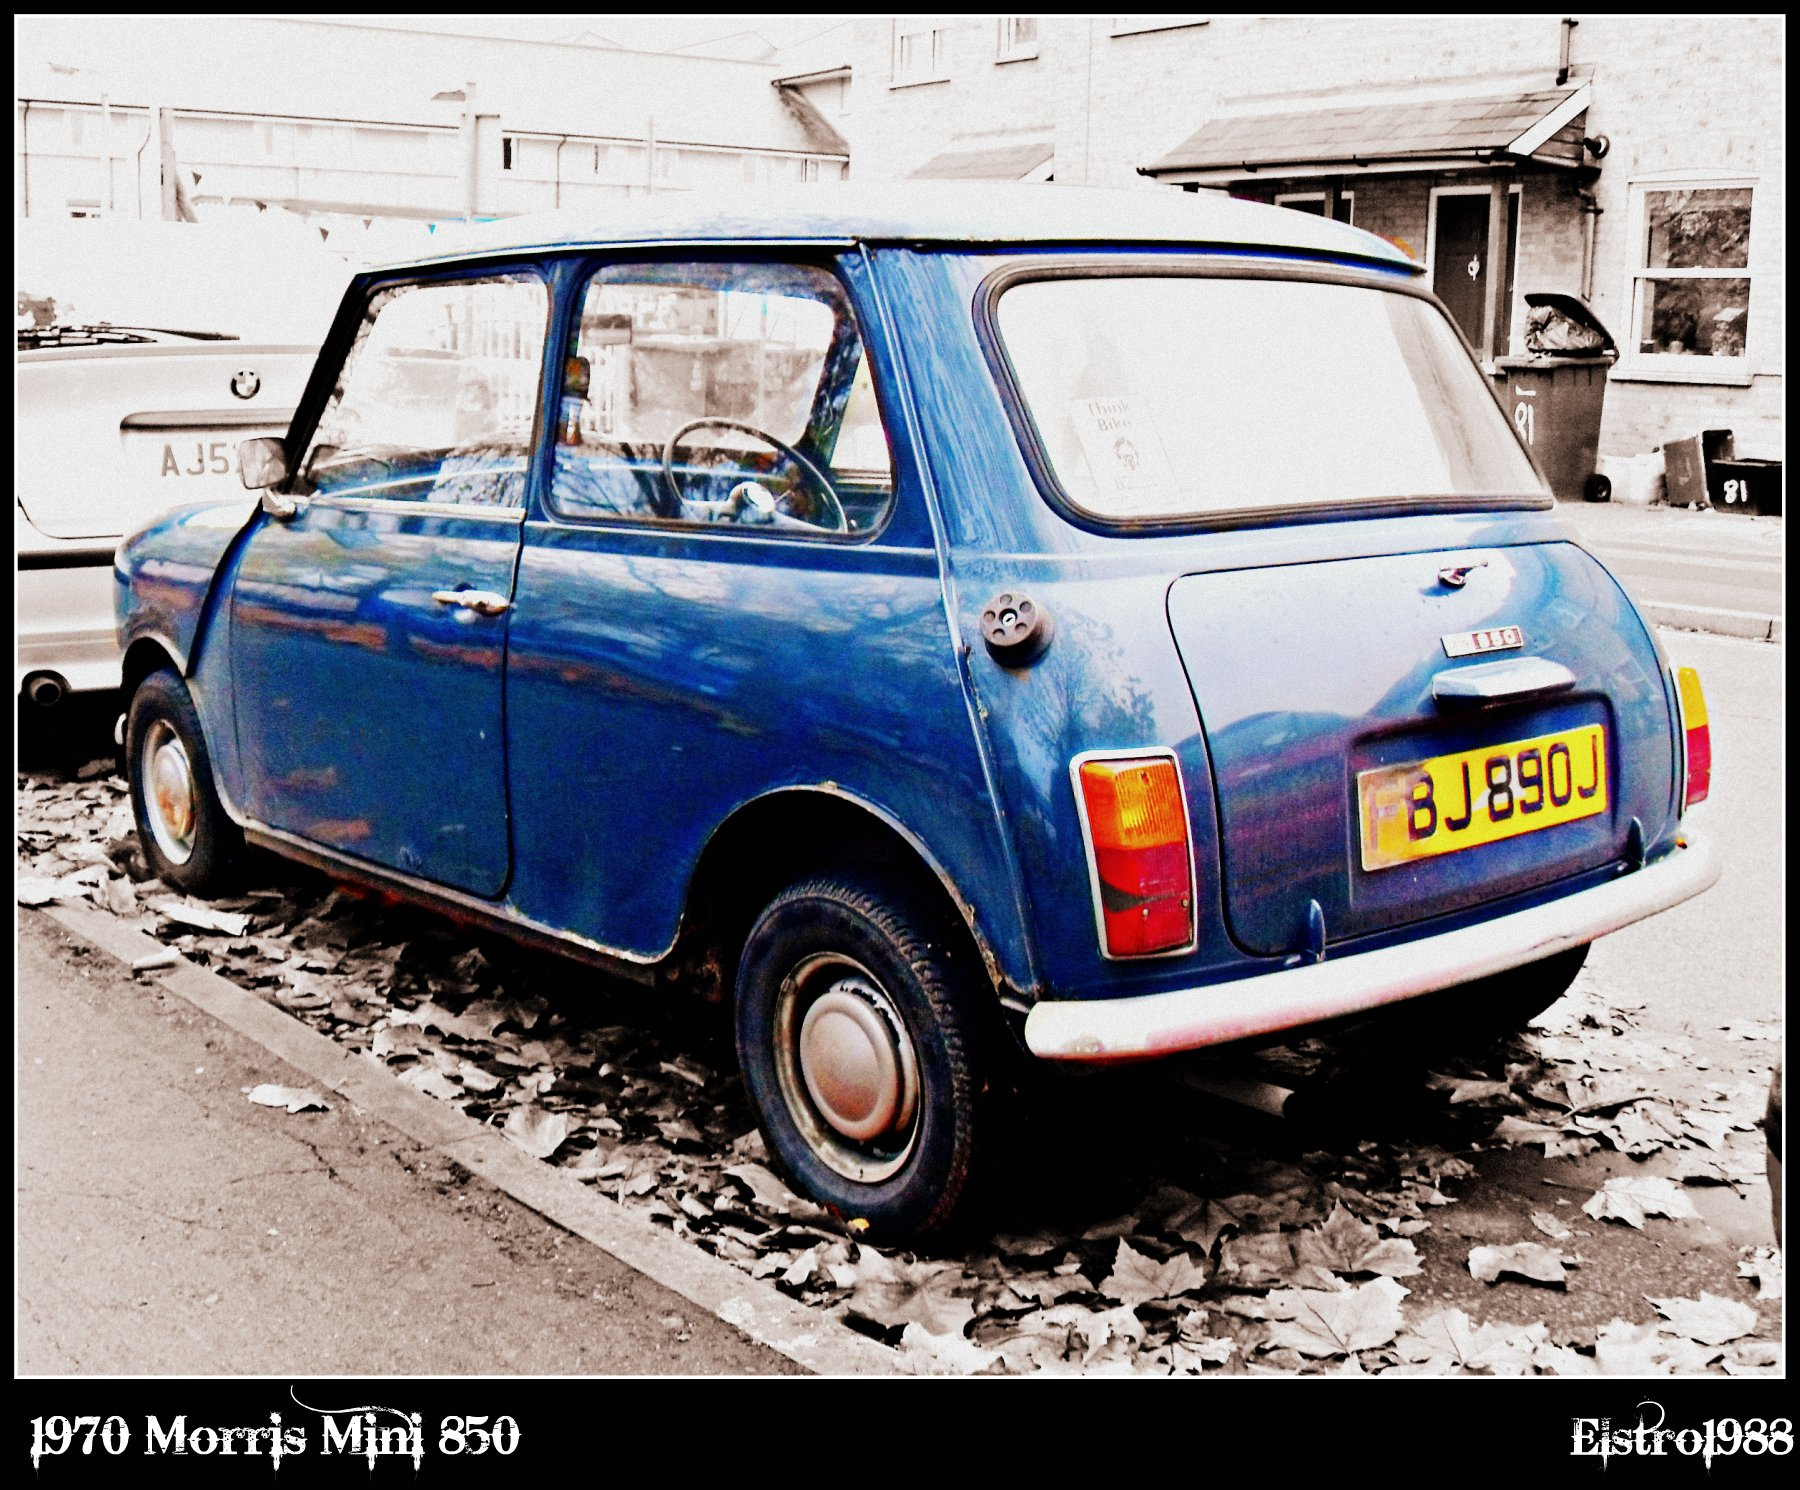 1970 Morris Mini 850 - Archive Dive | Flickr - Photo Sharing!